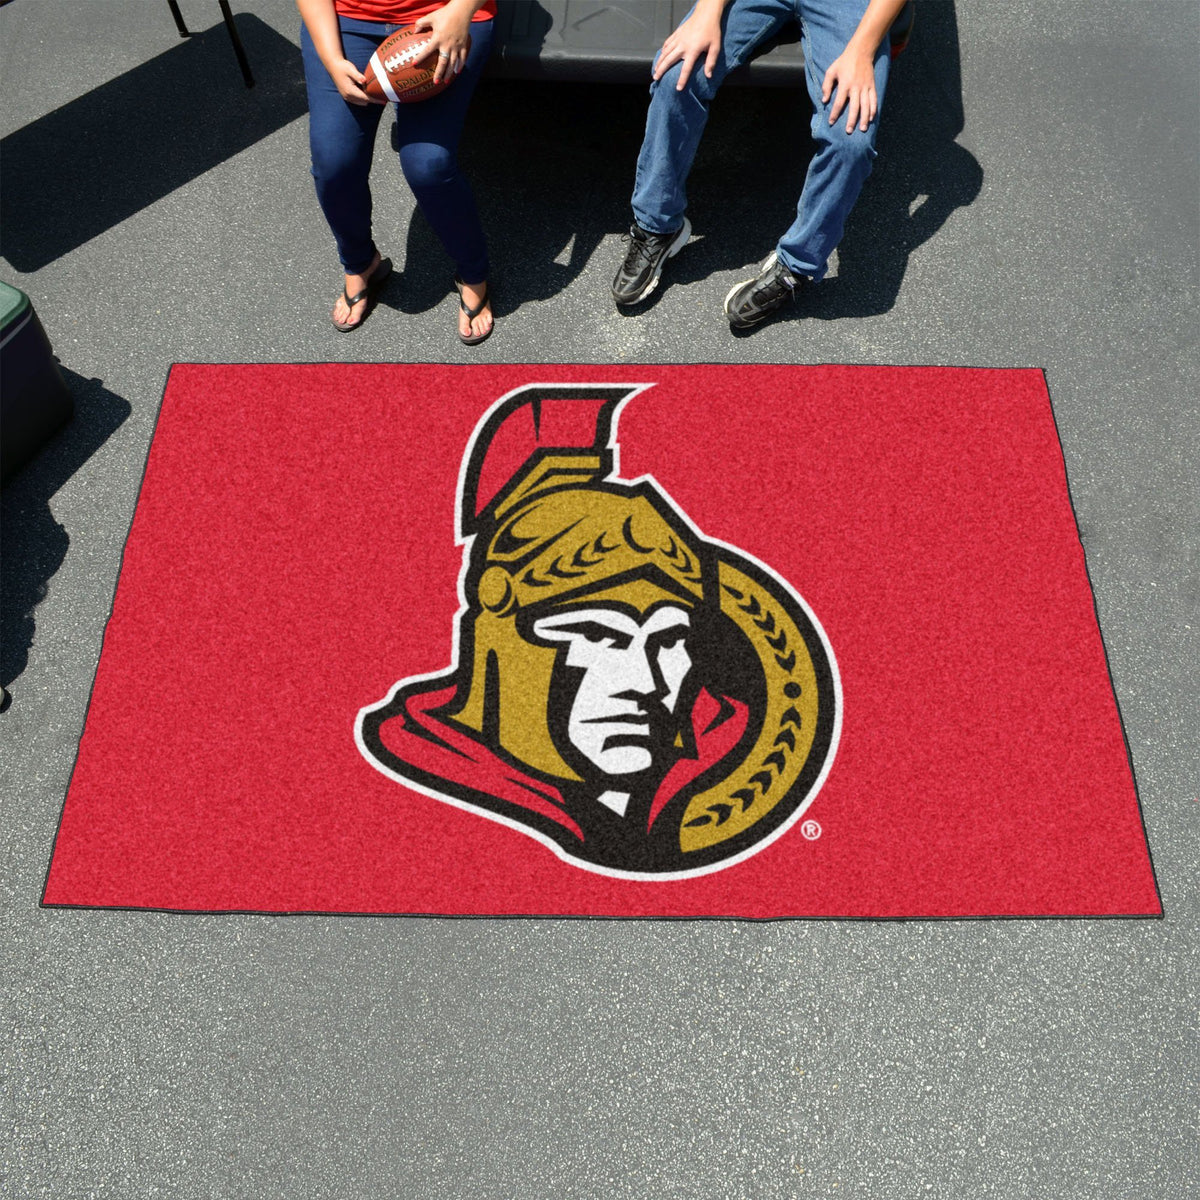 NHL - Ulti-Mat NHL Mats, Rectangular Mats, Ulti-Mat, NHL, Home Fan Mats Ottawa Senators